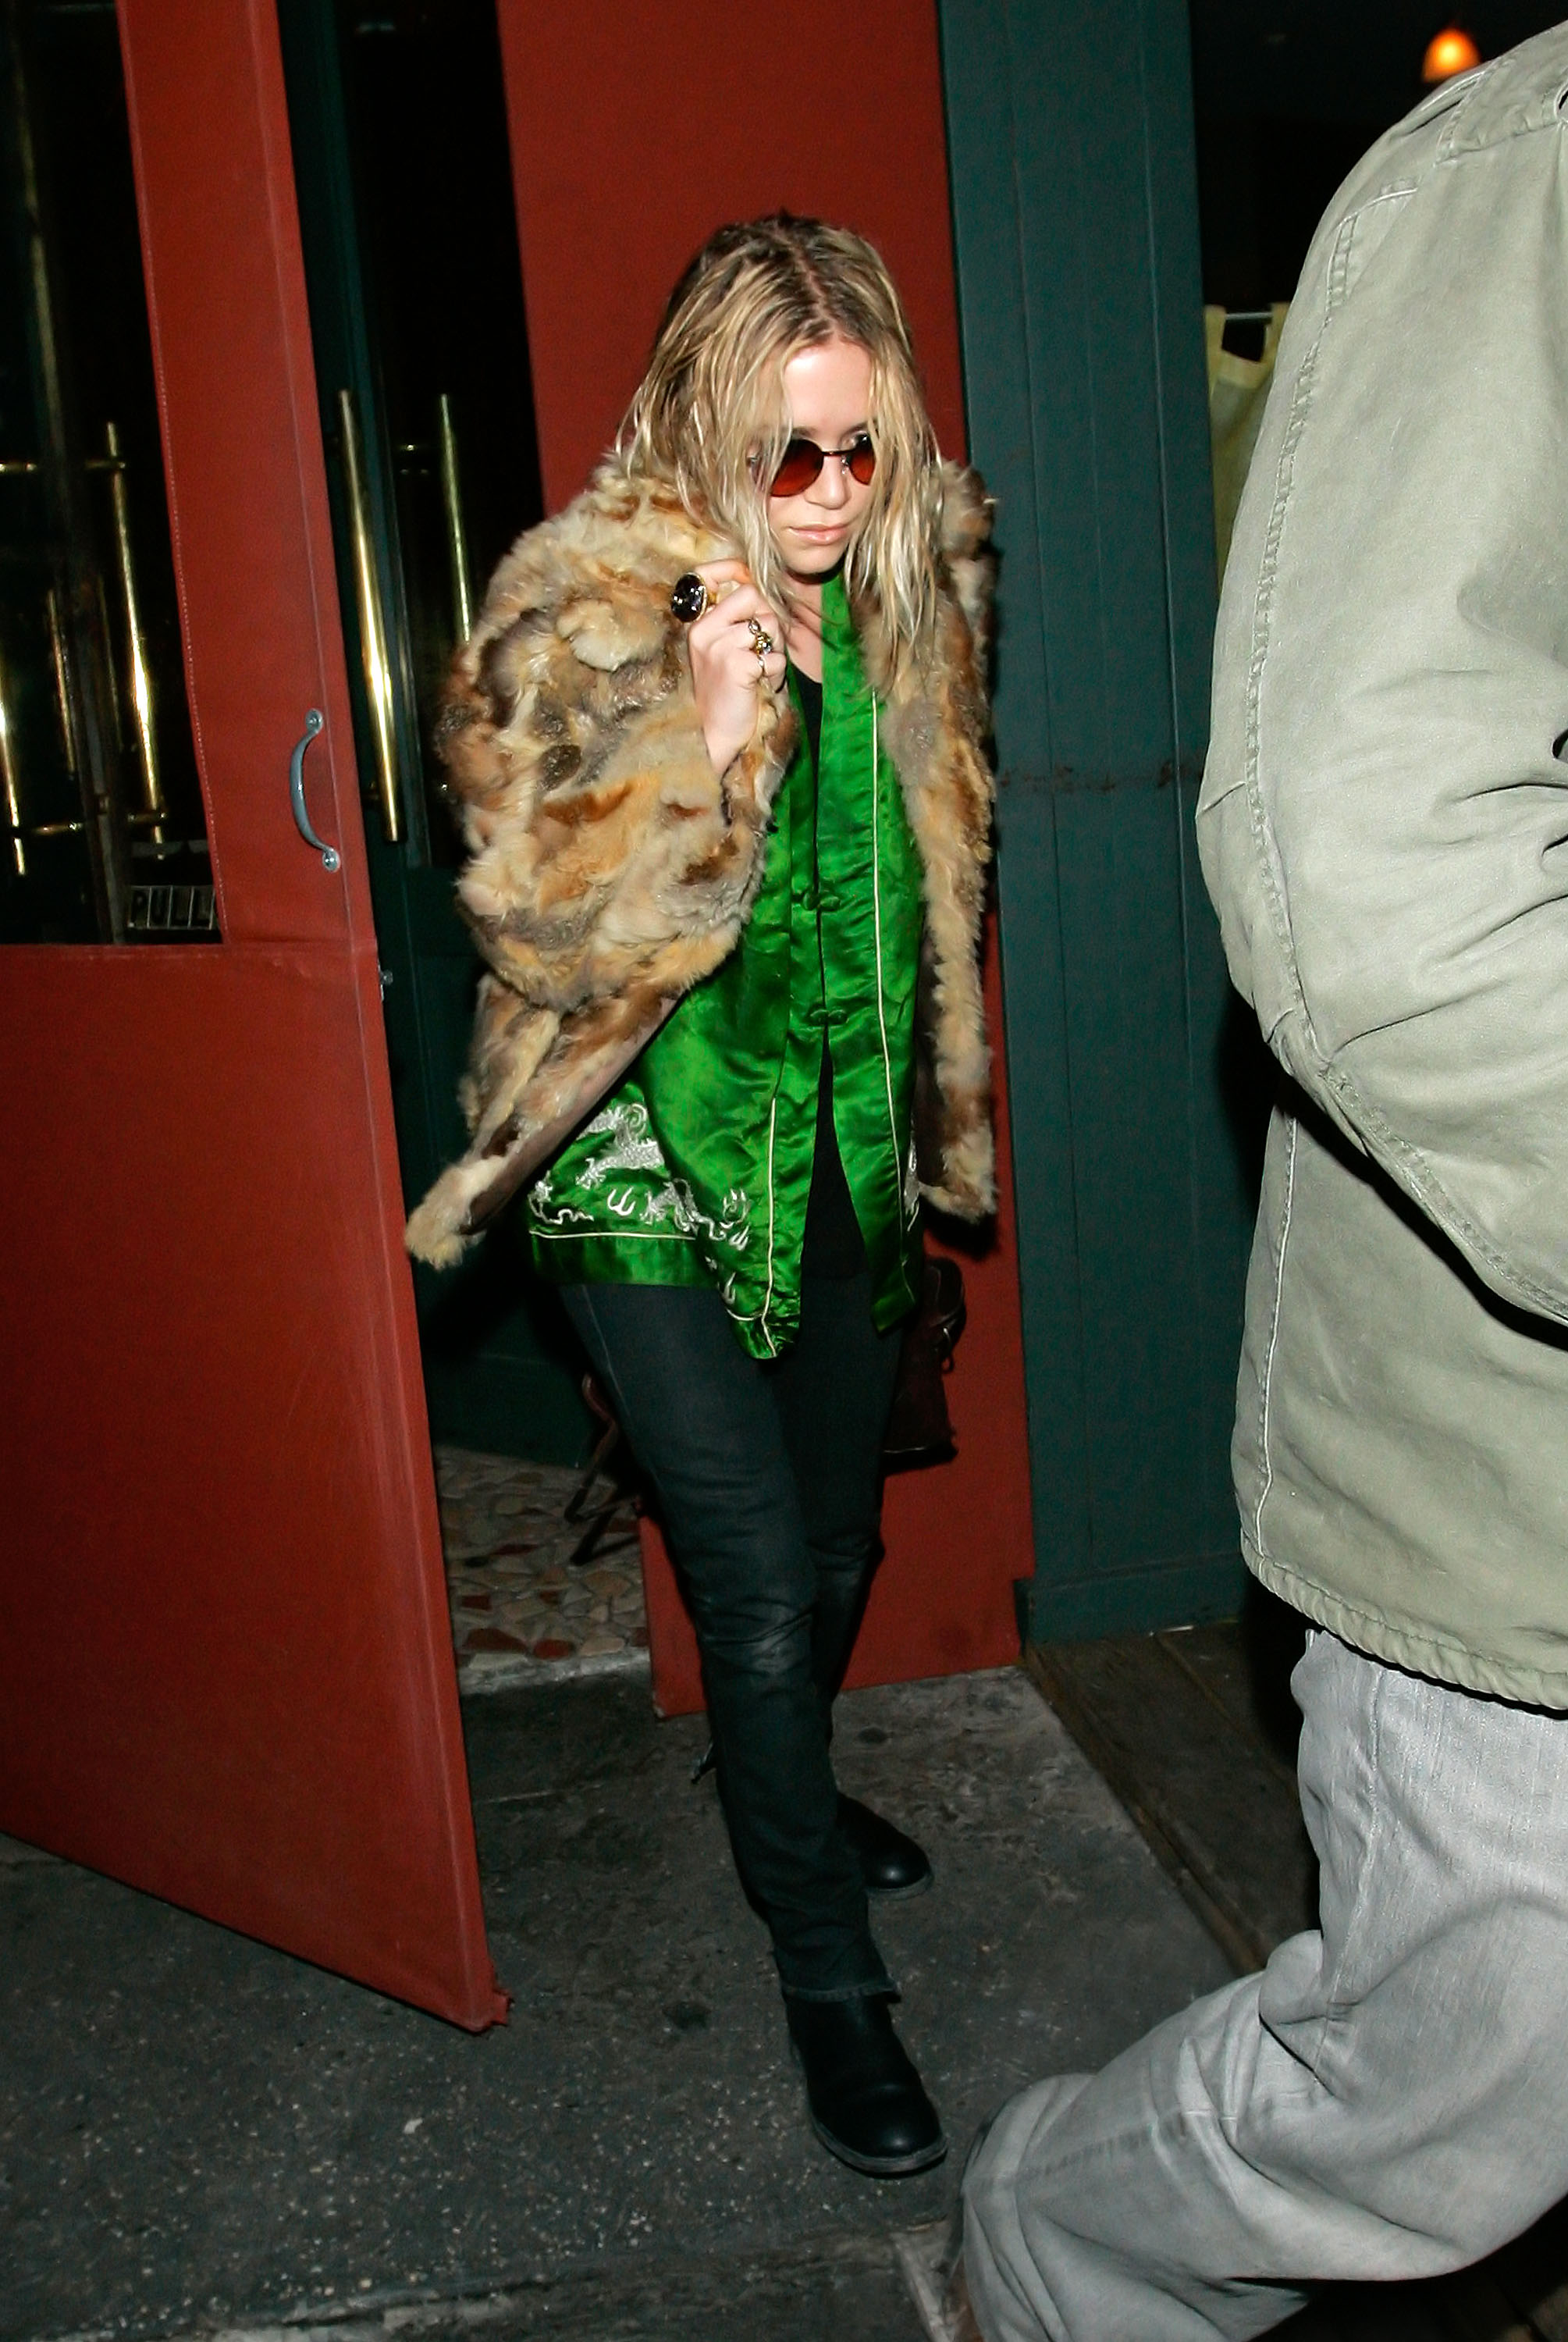 29760_celeb-city.eu_Mary_Kate_Olsen_out_and_about_for_a_late_lunch_in_the_West_Village_05.01.2008_02_122_415lo.jpg